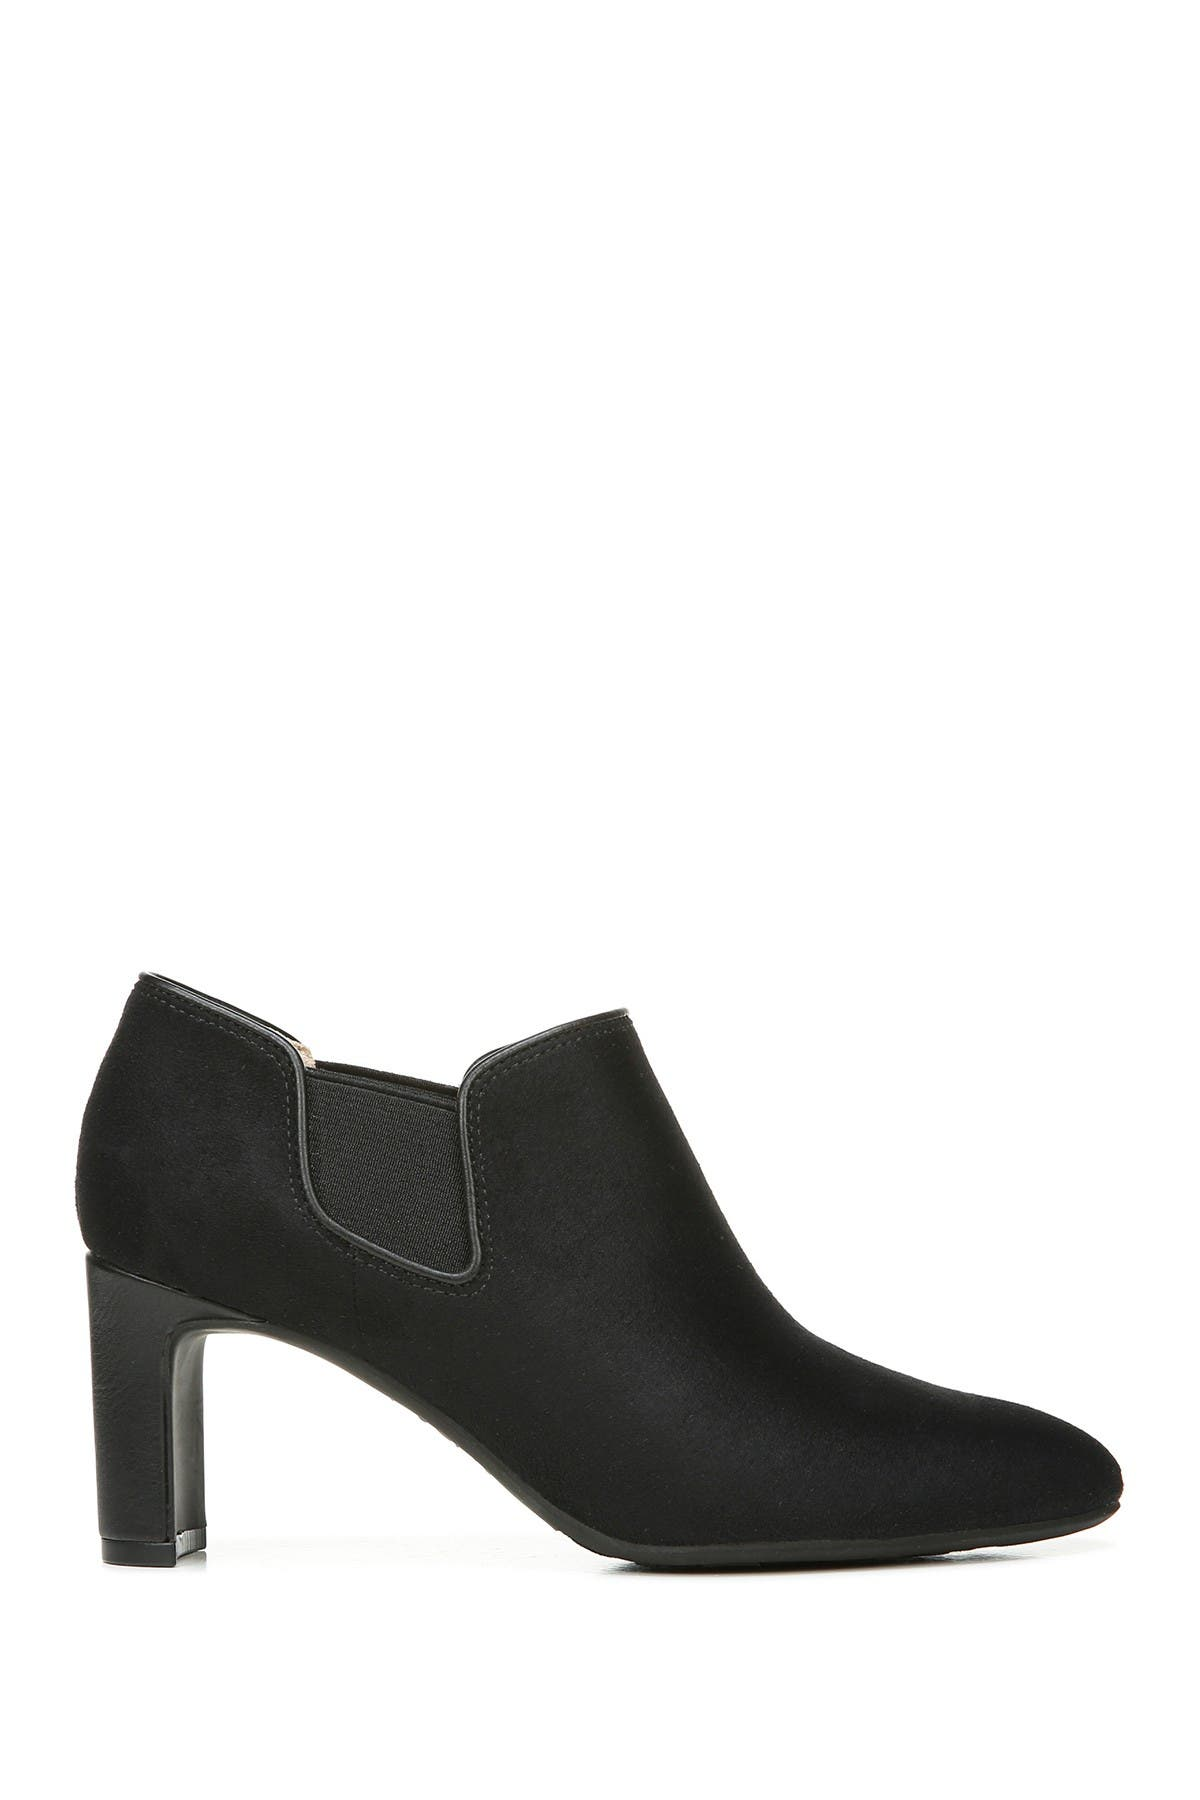 Image of LifeStride Gilmore Ankle Bootie - Wide Width Available